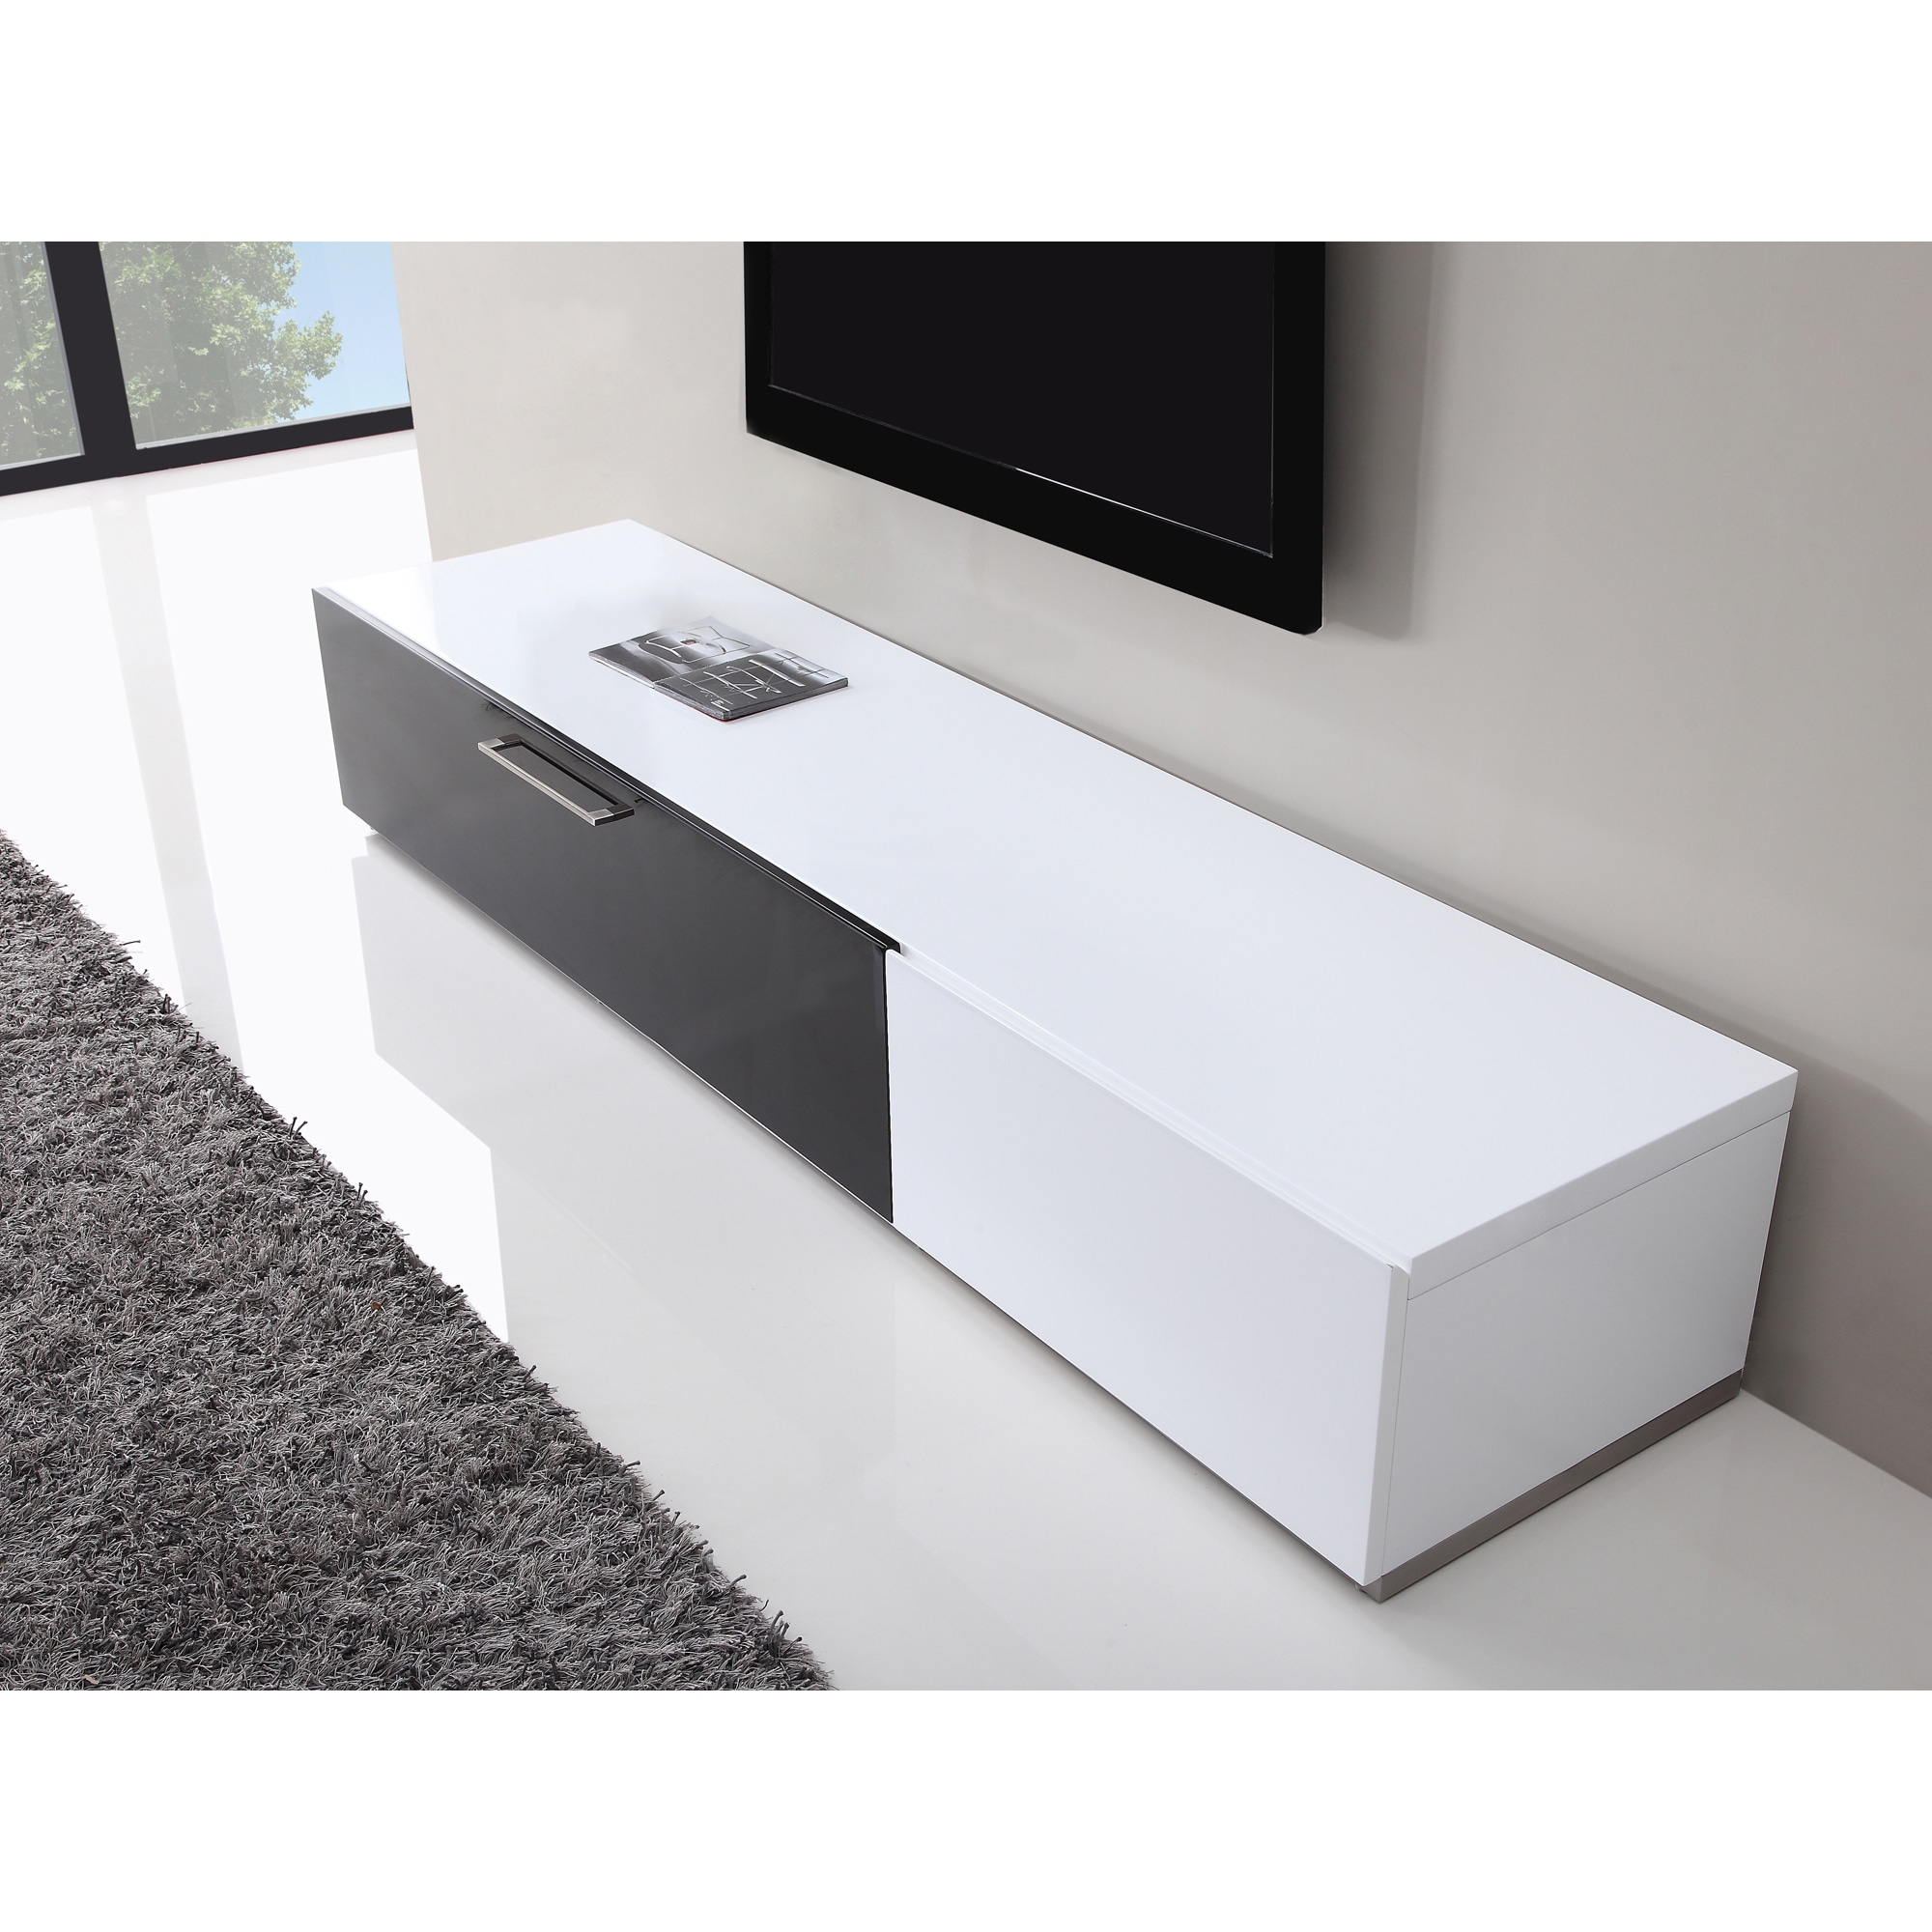 Tv Sideboard Modern B Modern Producer White Black Modern Tv Stand With Ir Glass